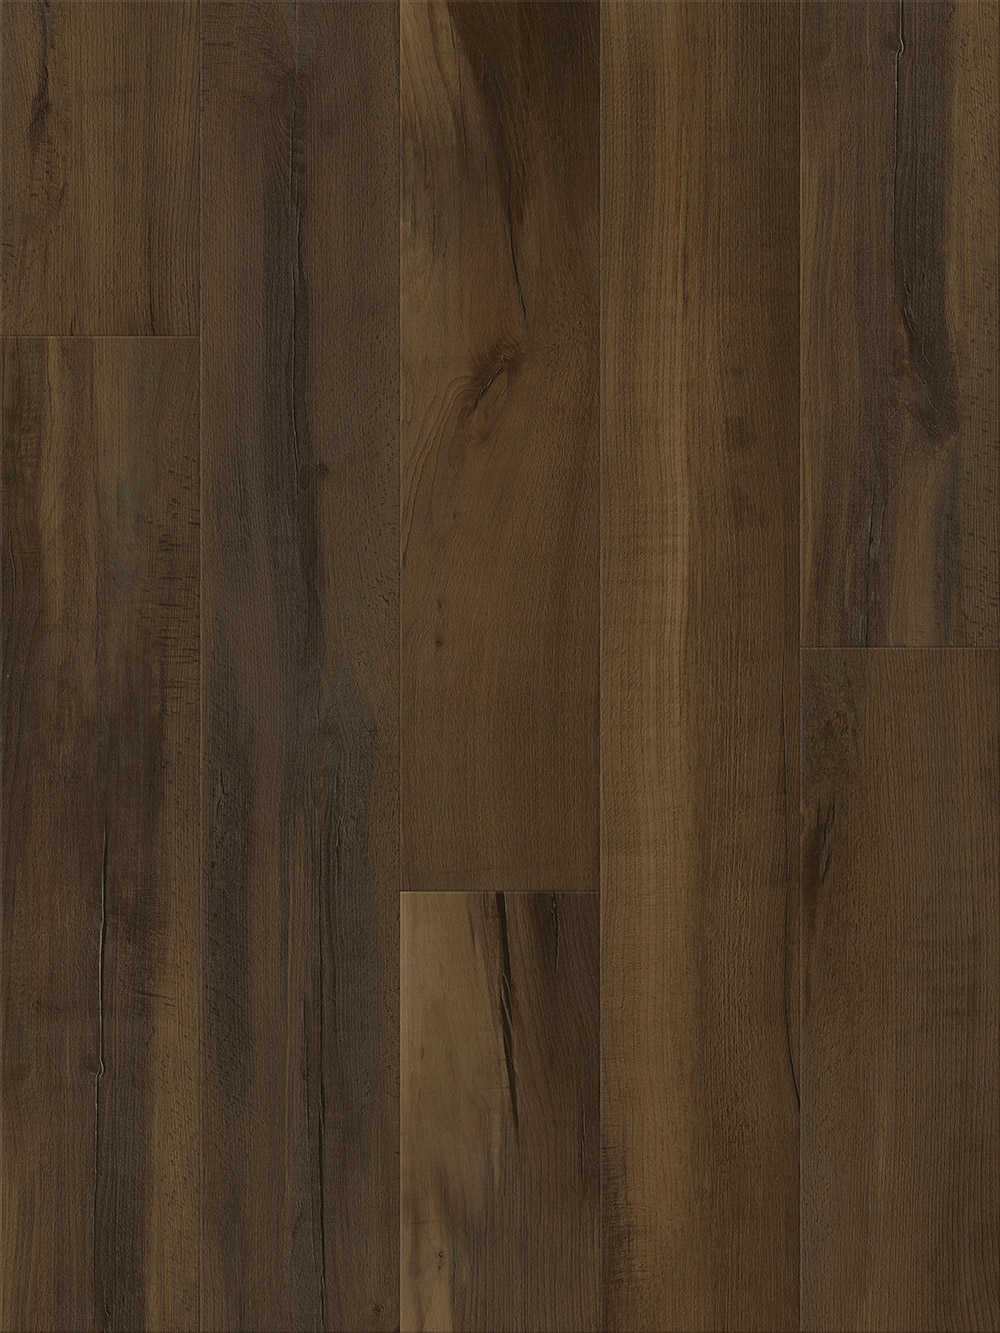 Pastoral Brown Loose Lay LVT 1LL09205